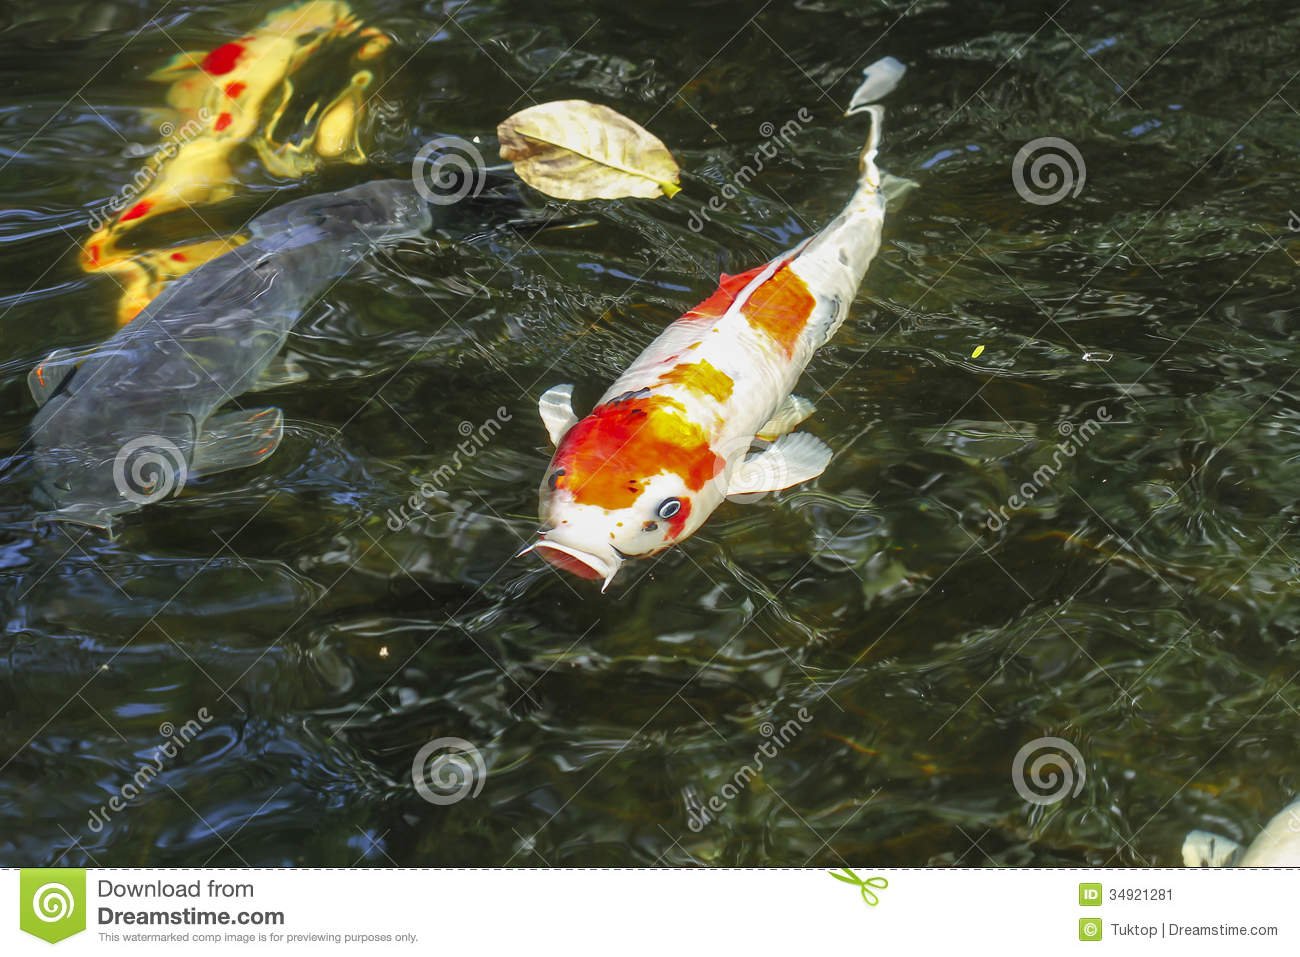 Koi pond design thailand joy studio design gallery for Koi fish pond design in malaysia